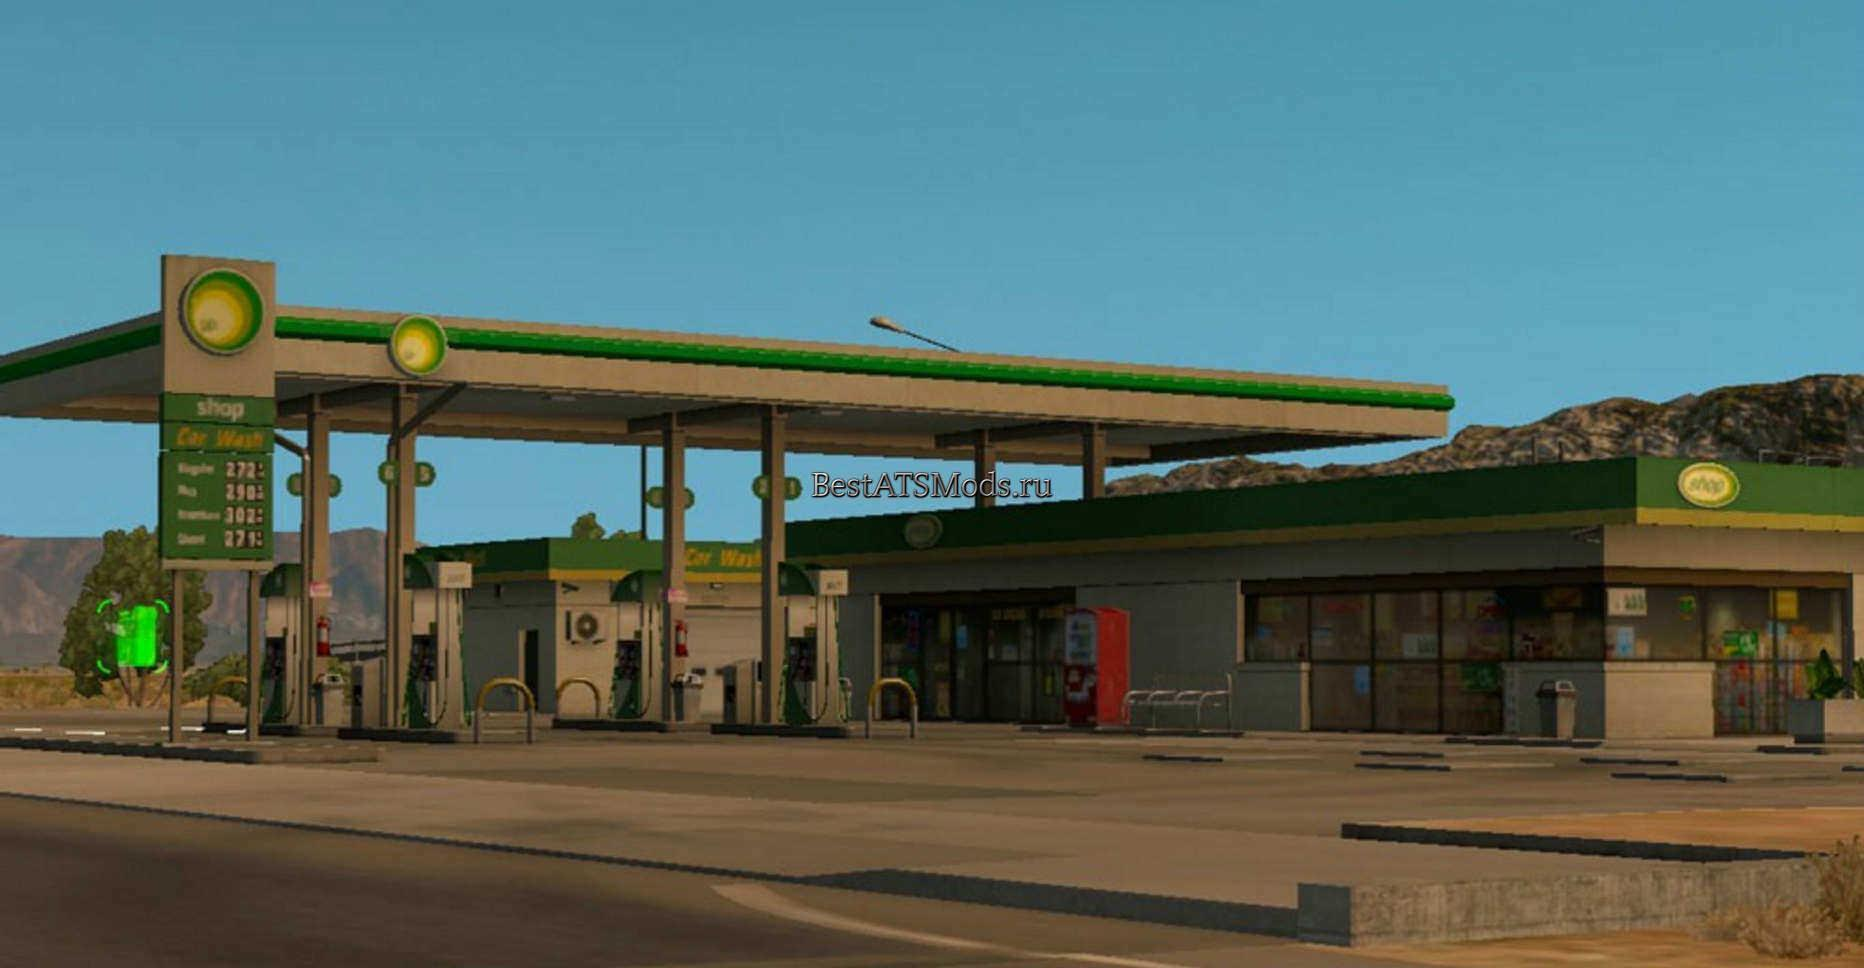 rsz_Мод_реальные_цены_на_газ__klaas'_real_gas_prices_mod_v_105_mod_american_truck_simulator